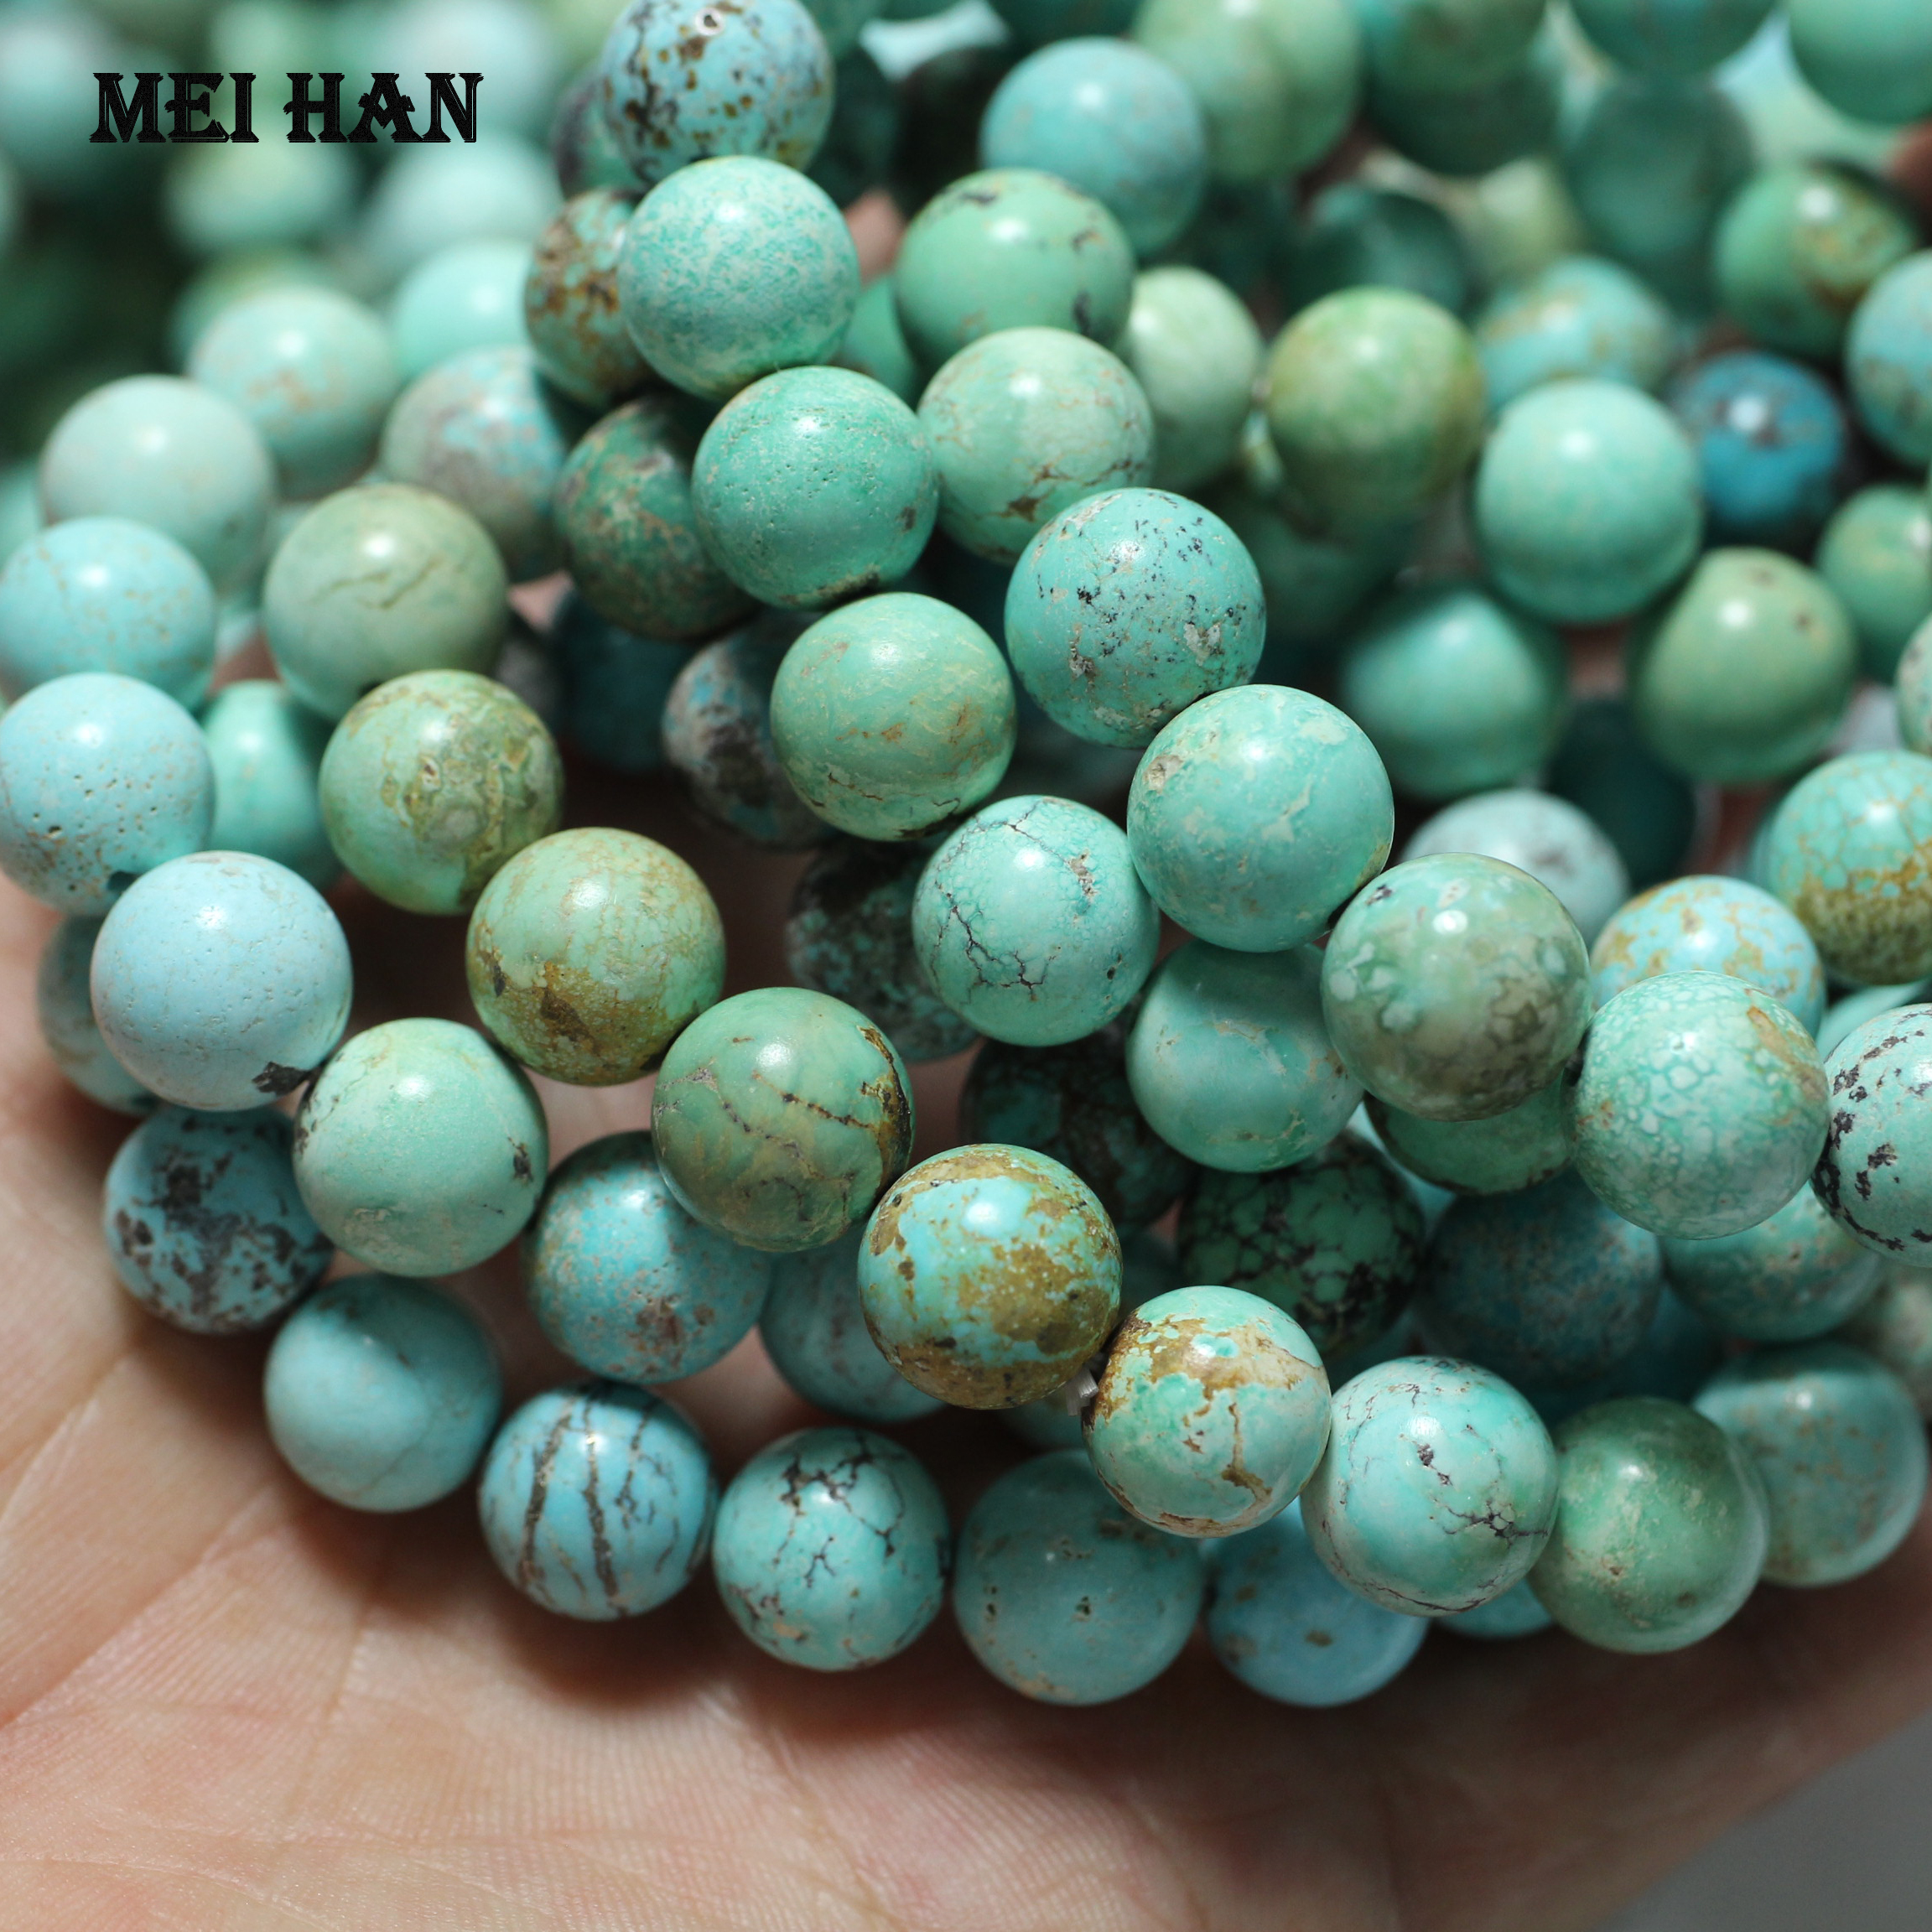 Meihan Free shipping 18beads 24g set rare amazing 10 10 5mm Natural Hubei Turquoise untreated ore